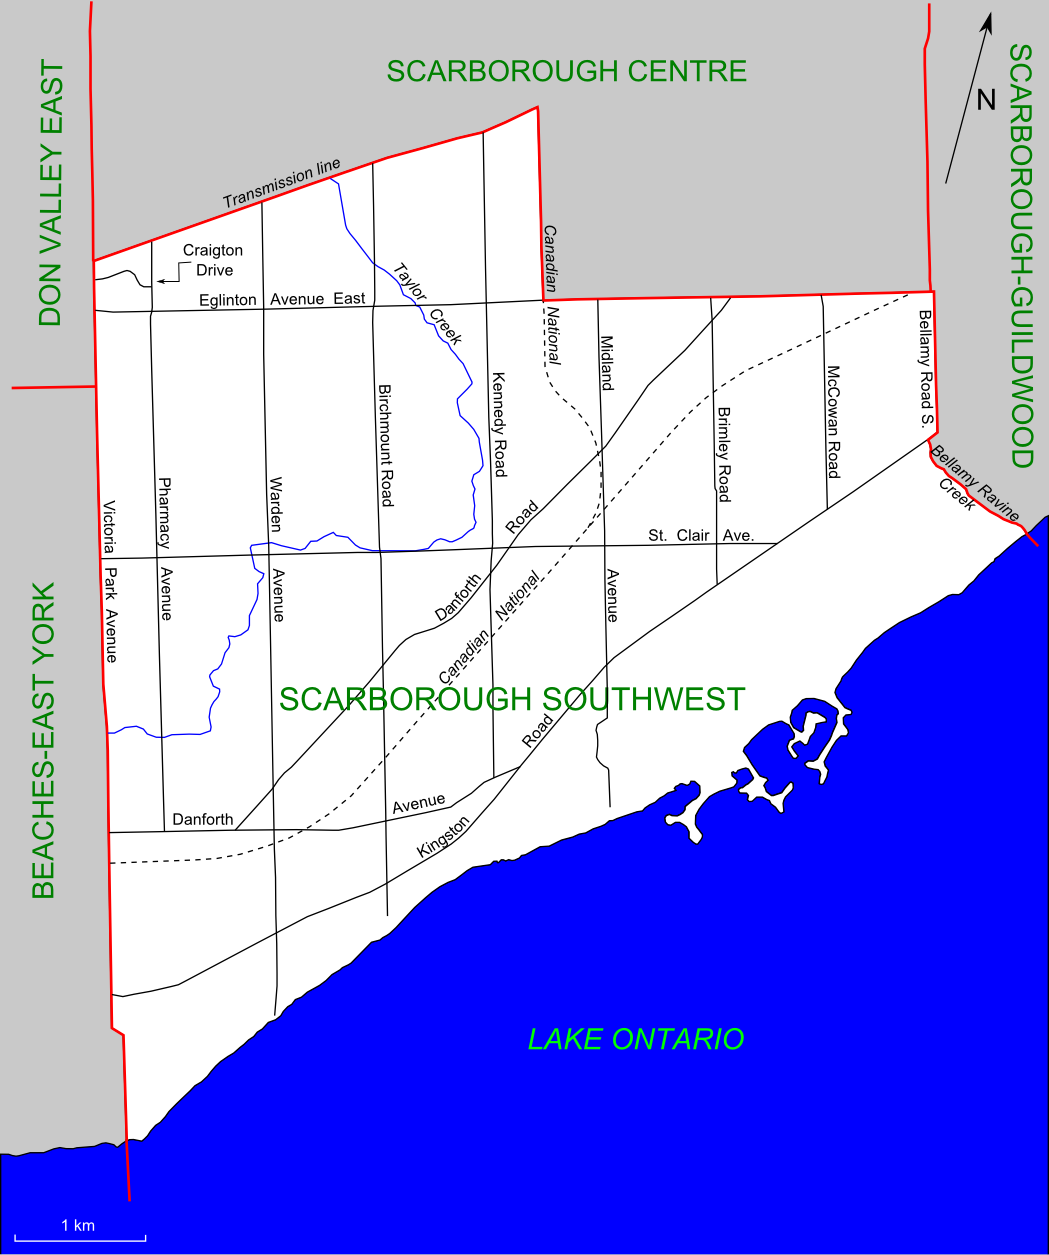 Scarborough Canada Map File:Scarborough Southwest (riding map).png   Wikipedia